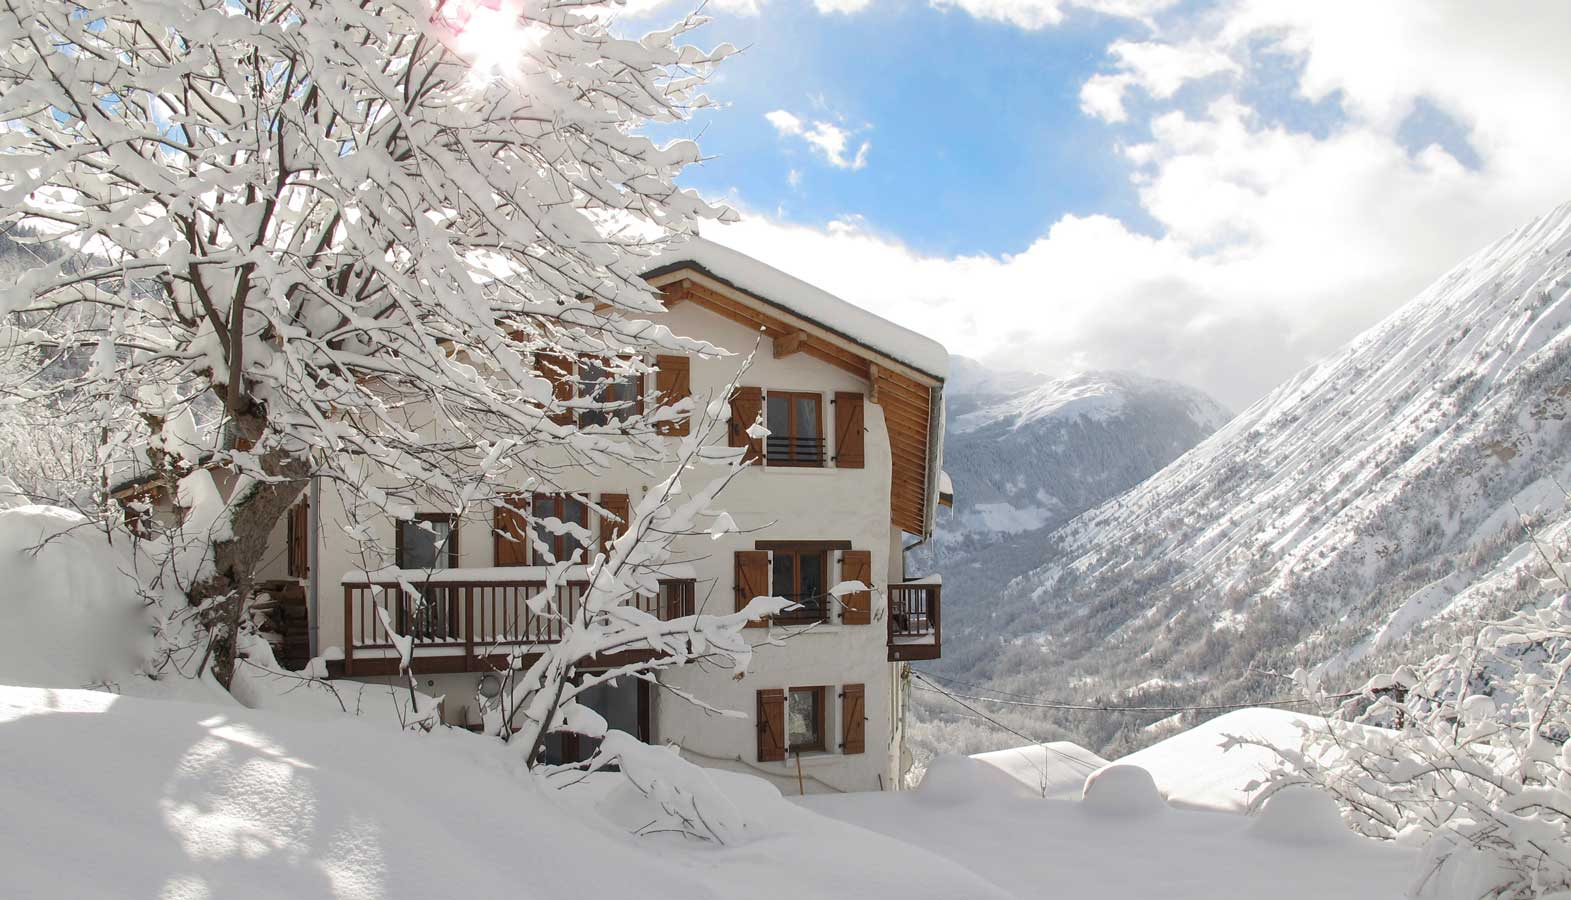 chalet-broski in the snow